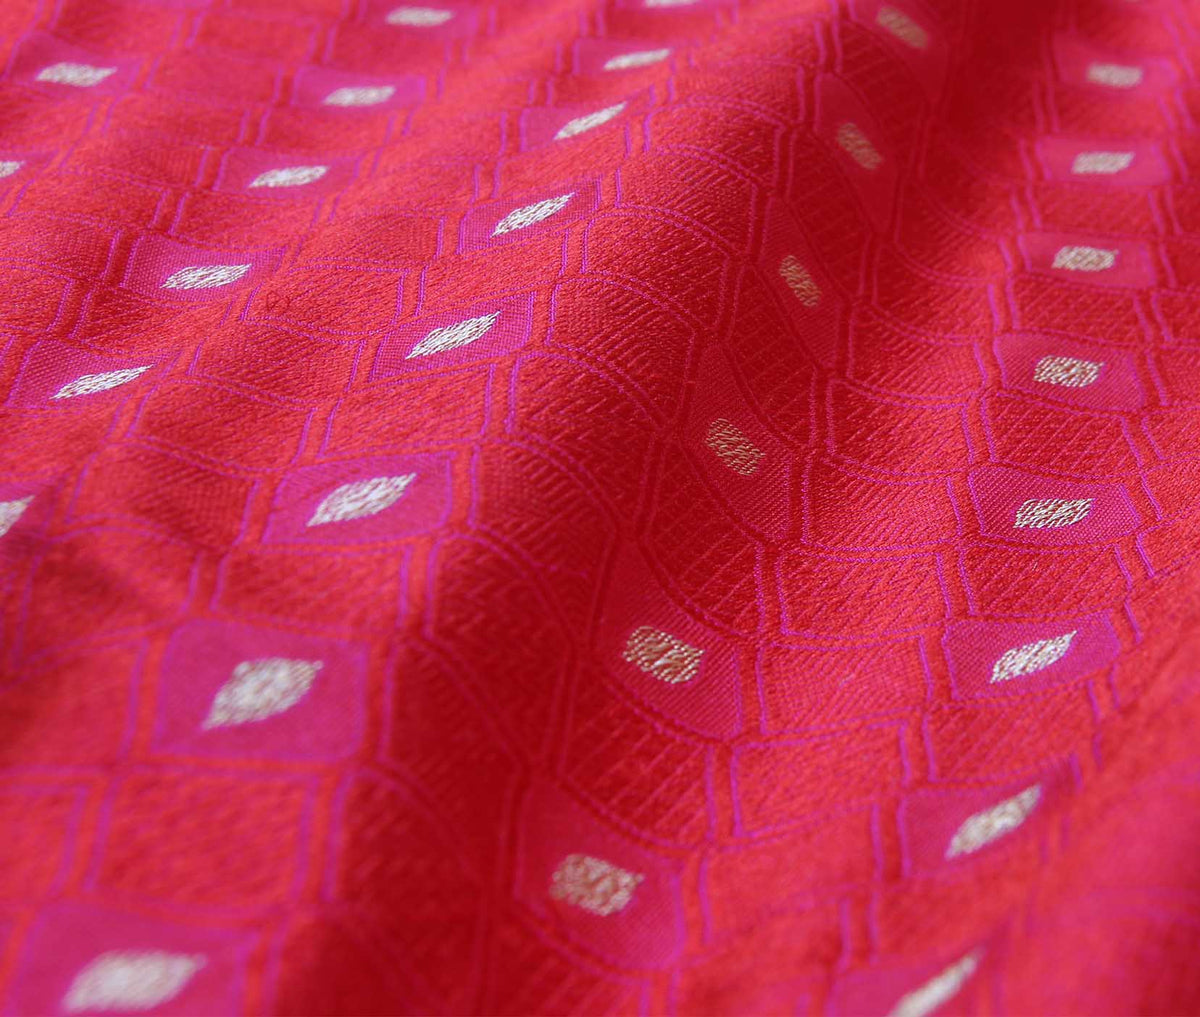 Red Katan Silk Handwoven Banarasi saree with meenedar tanchoi weave (3) closeup